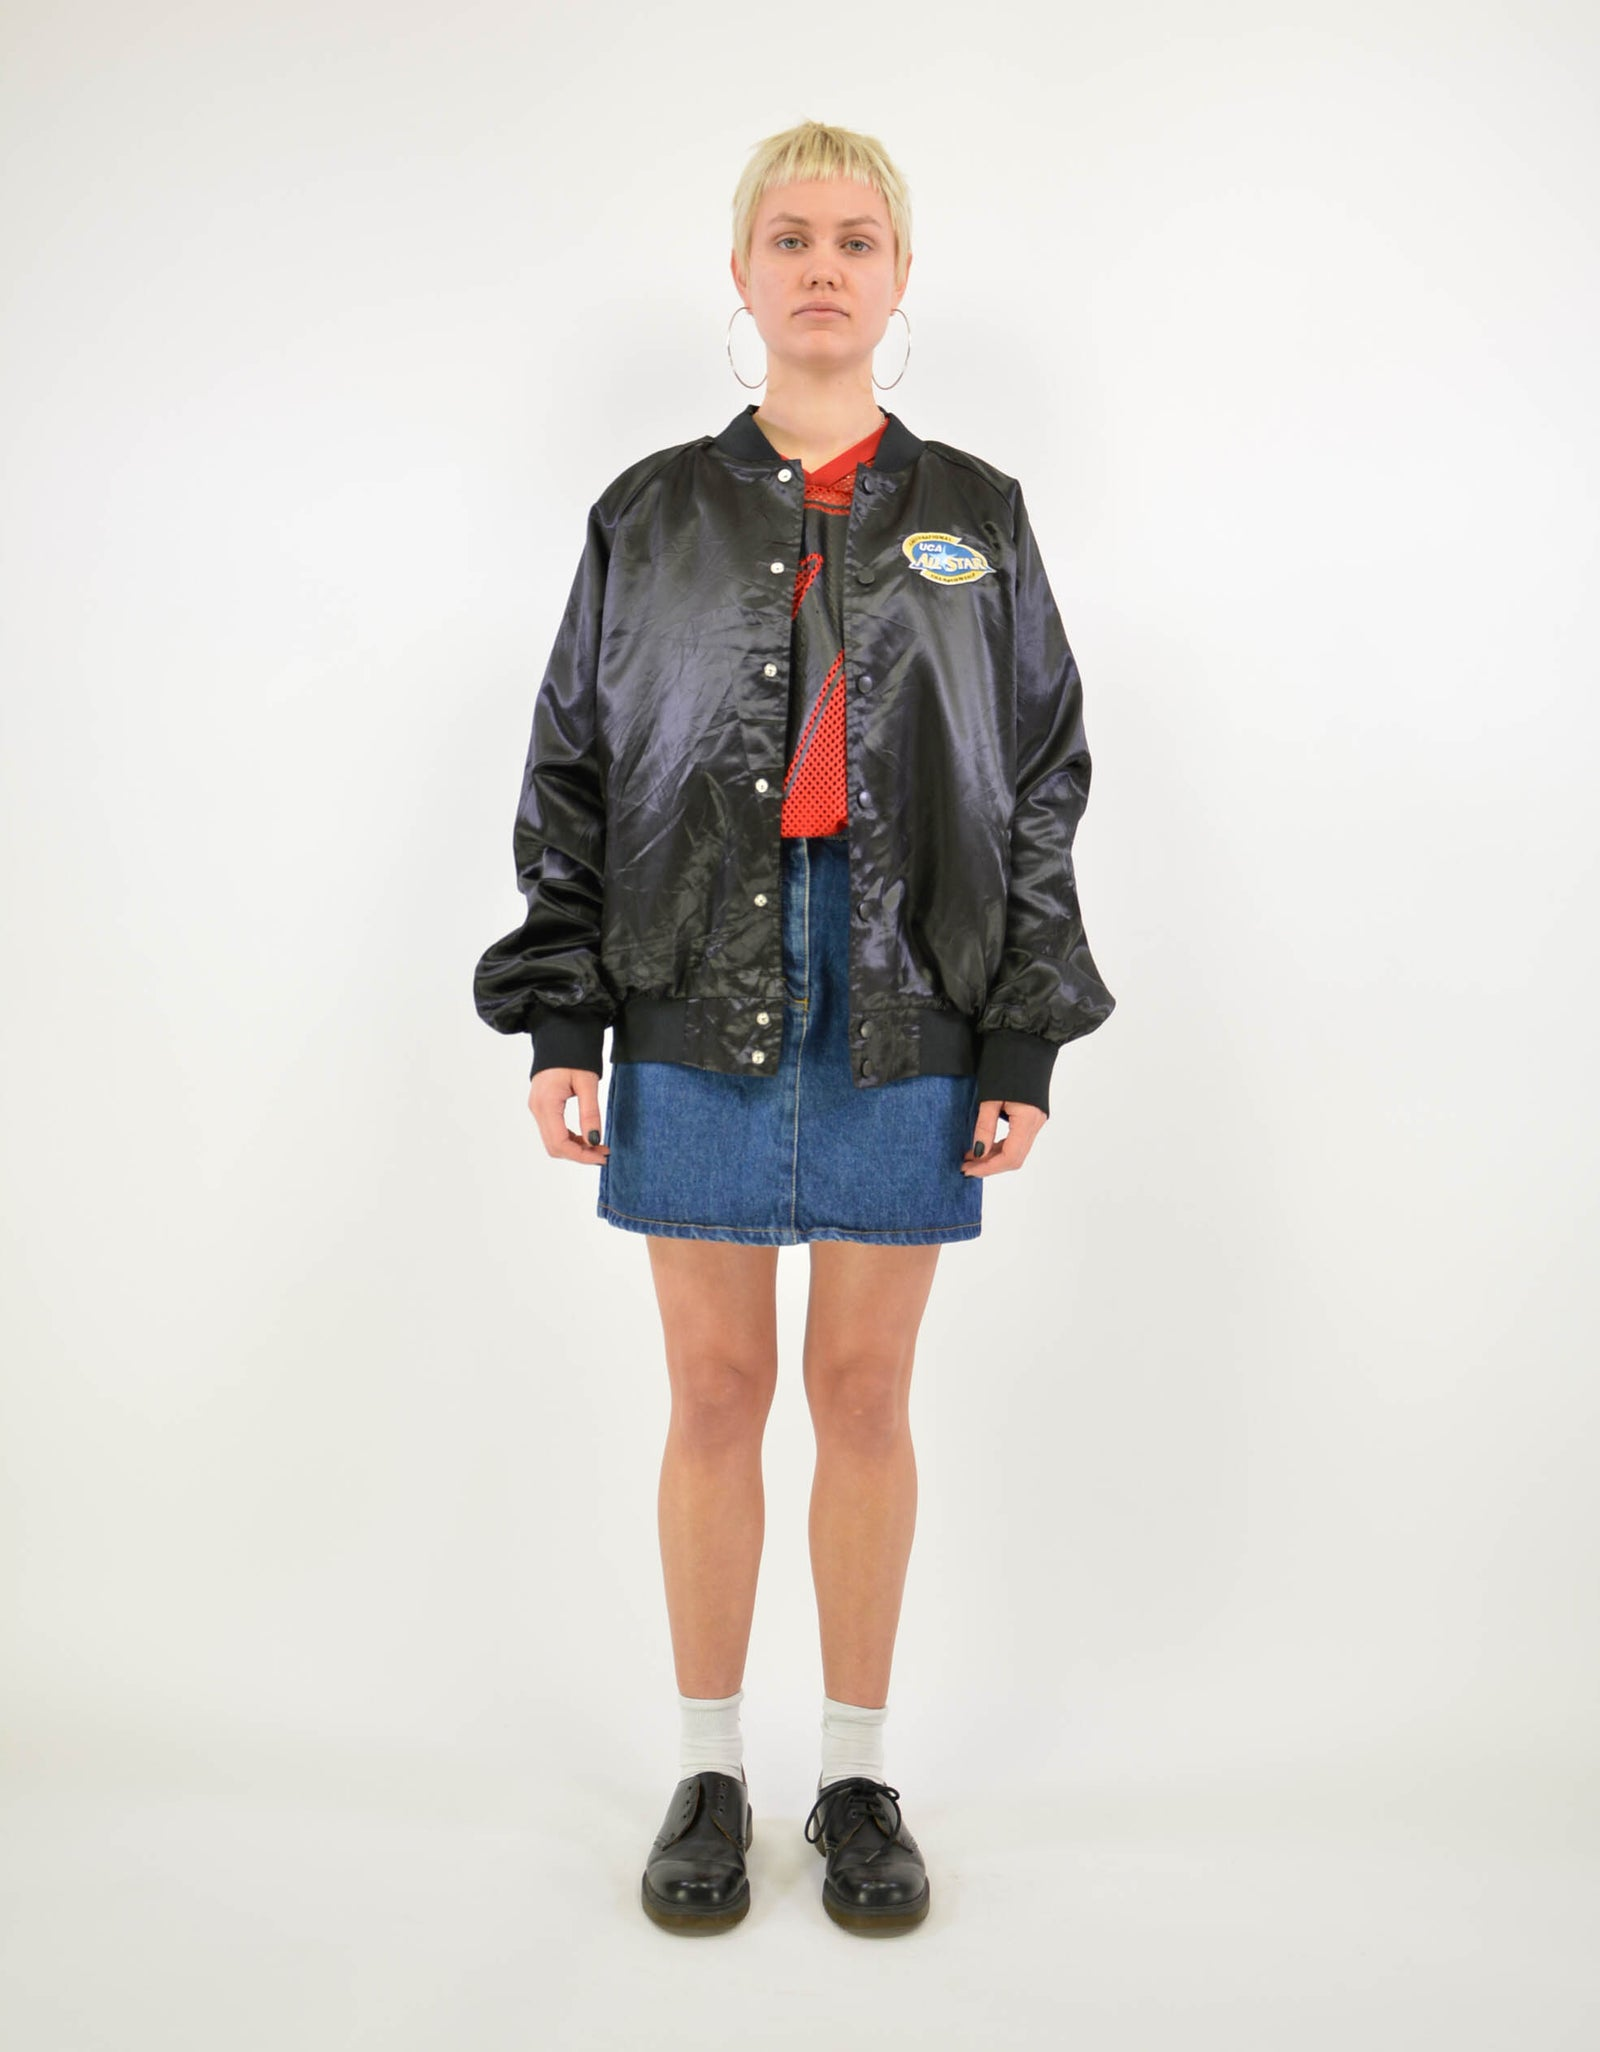 80s ALL STAR jacket - PICKNWEIGHT - VINTAGE KILO STORE